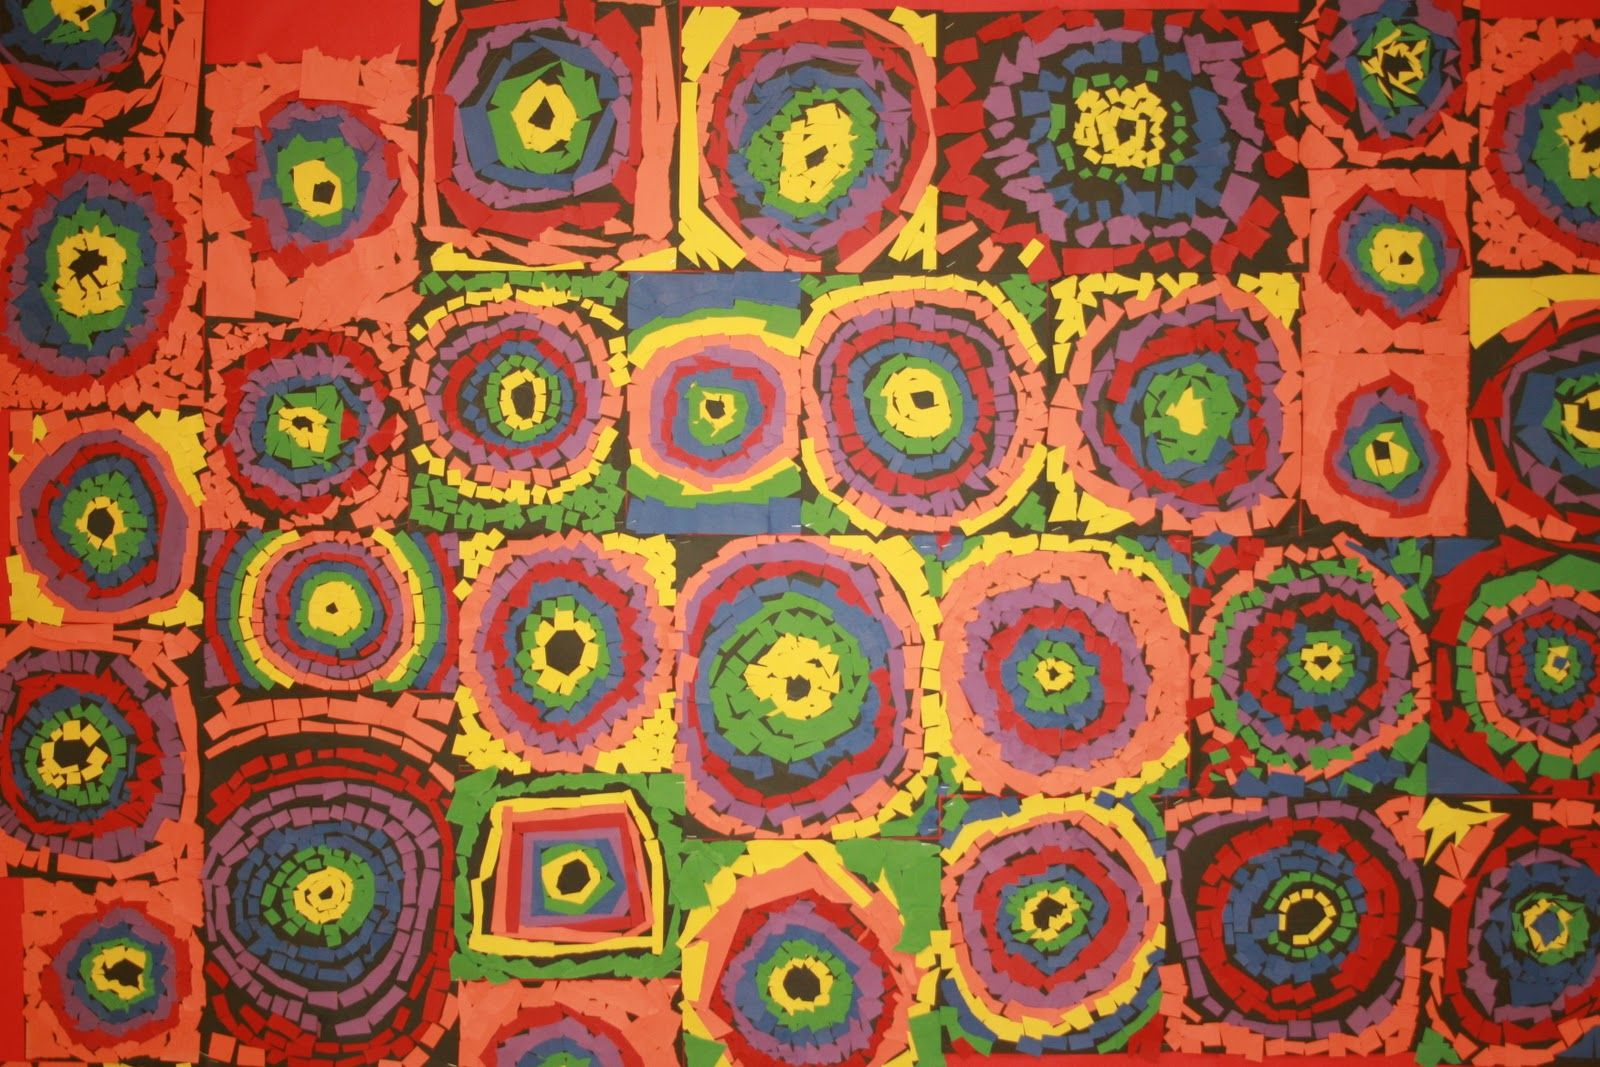 Color wheel art lesson for second grade - Find This Pin And More On Lesson Ideas Flying Crayons And Other Adventures In My Elementary Art Room Second Grade Color Wheels